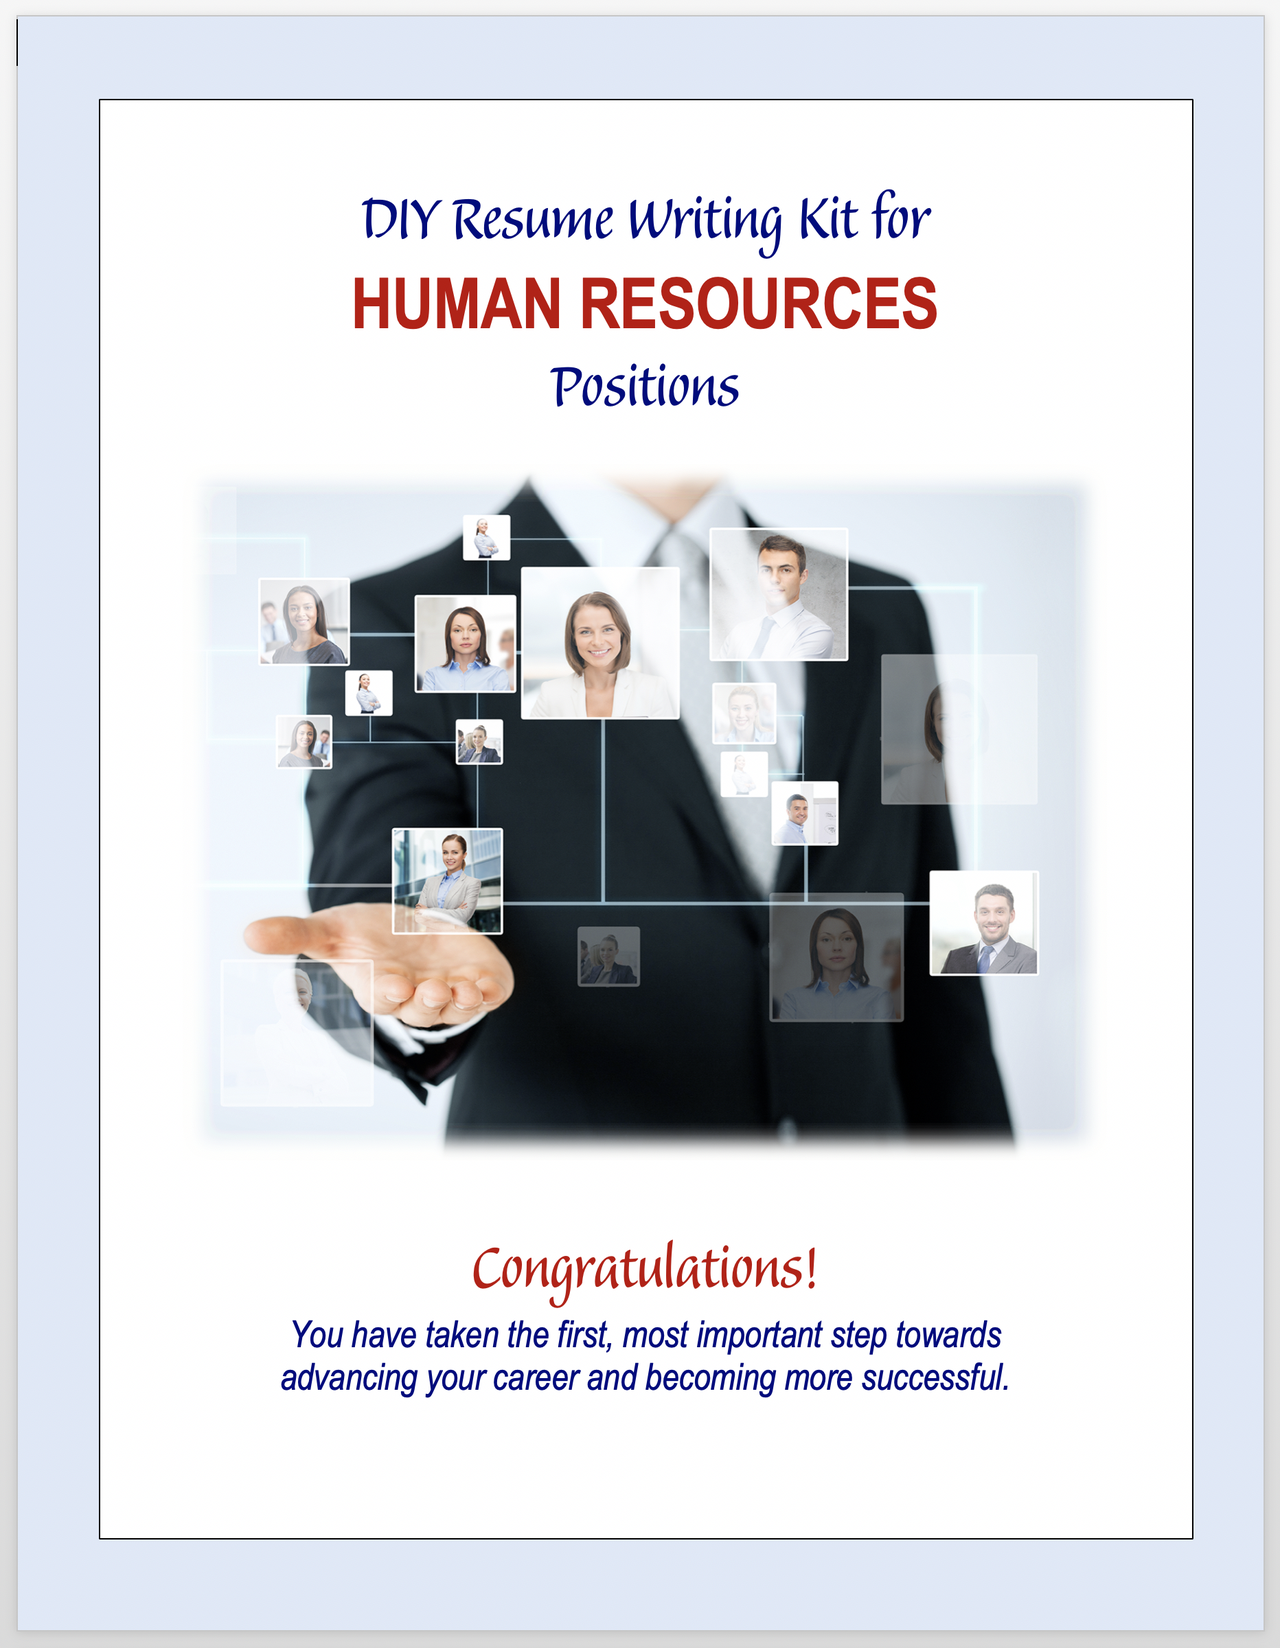 human resources.png